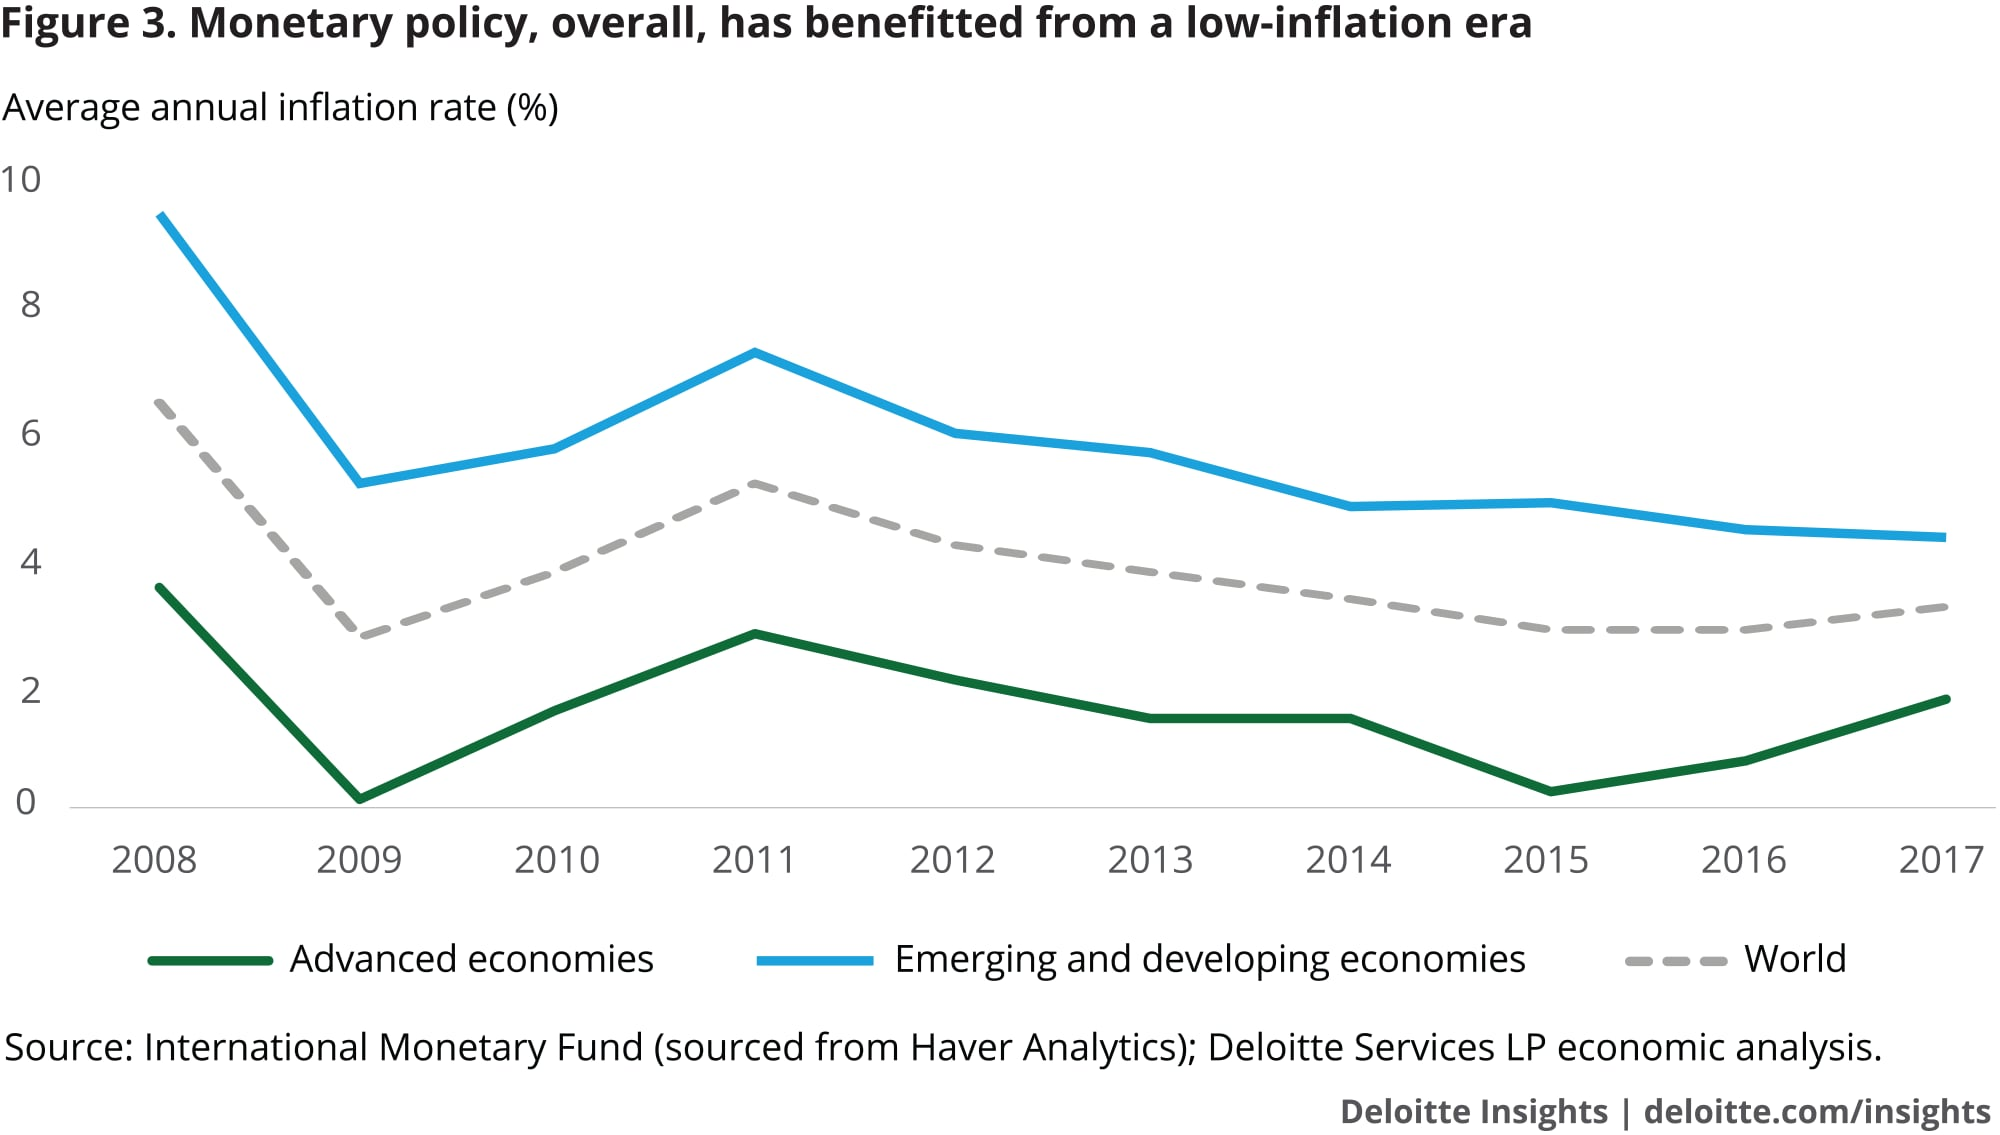 Monetary policy, overall, has benefitted from a low-inflation era